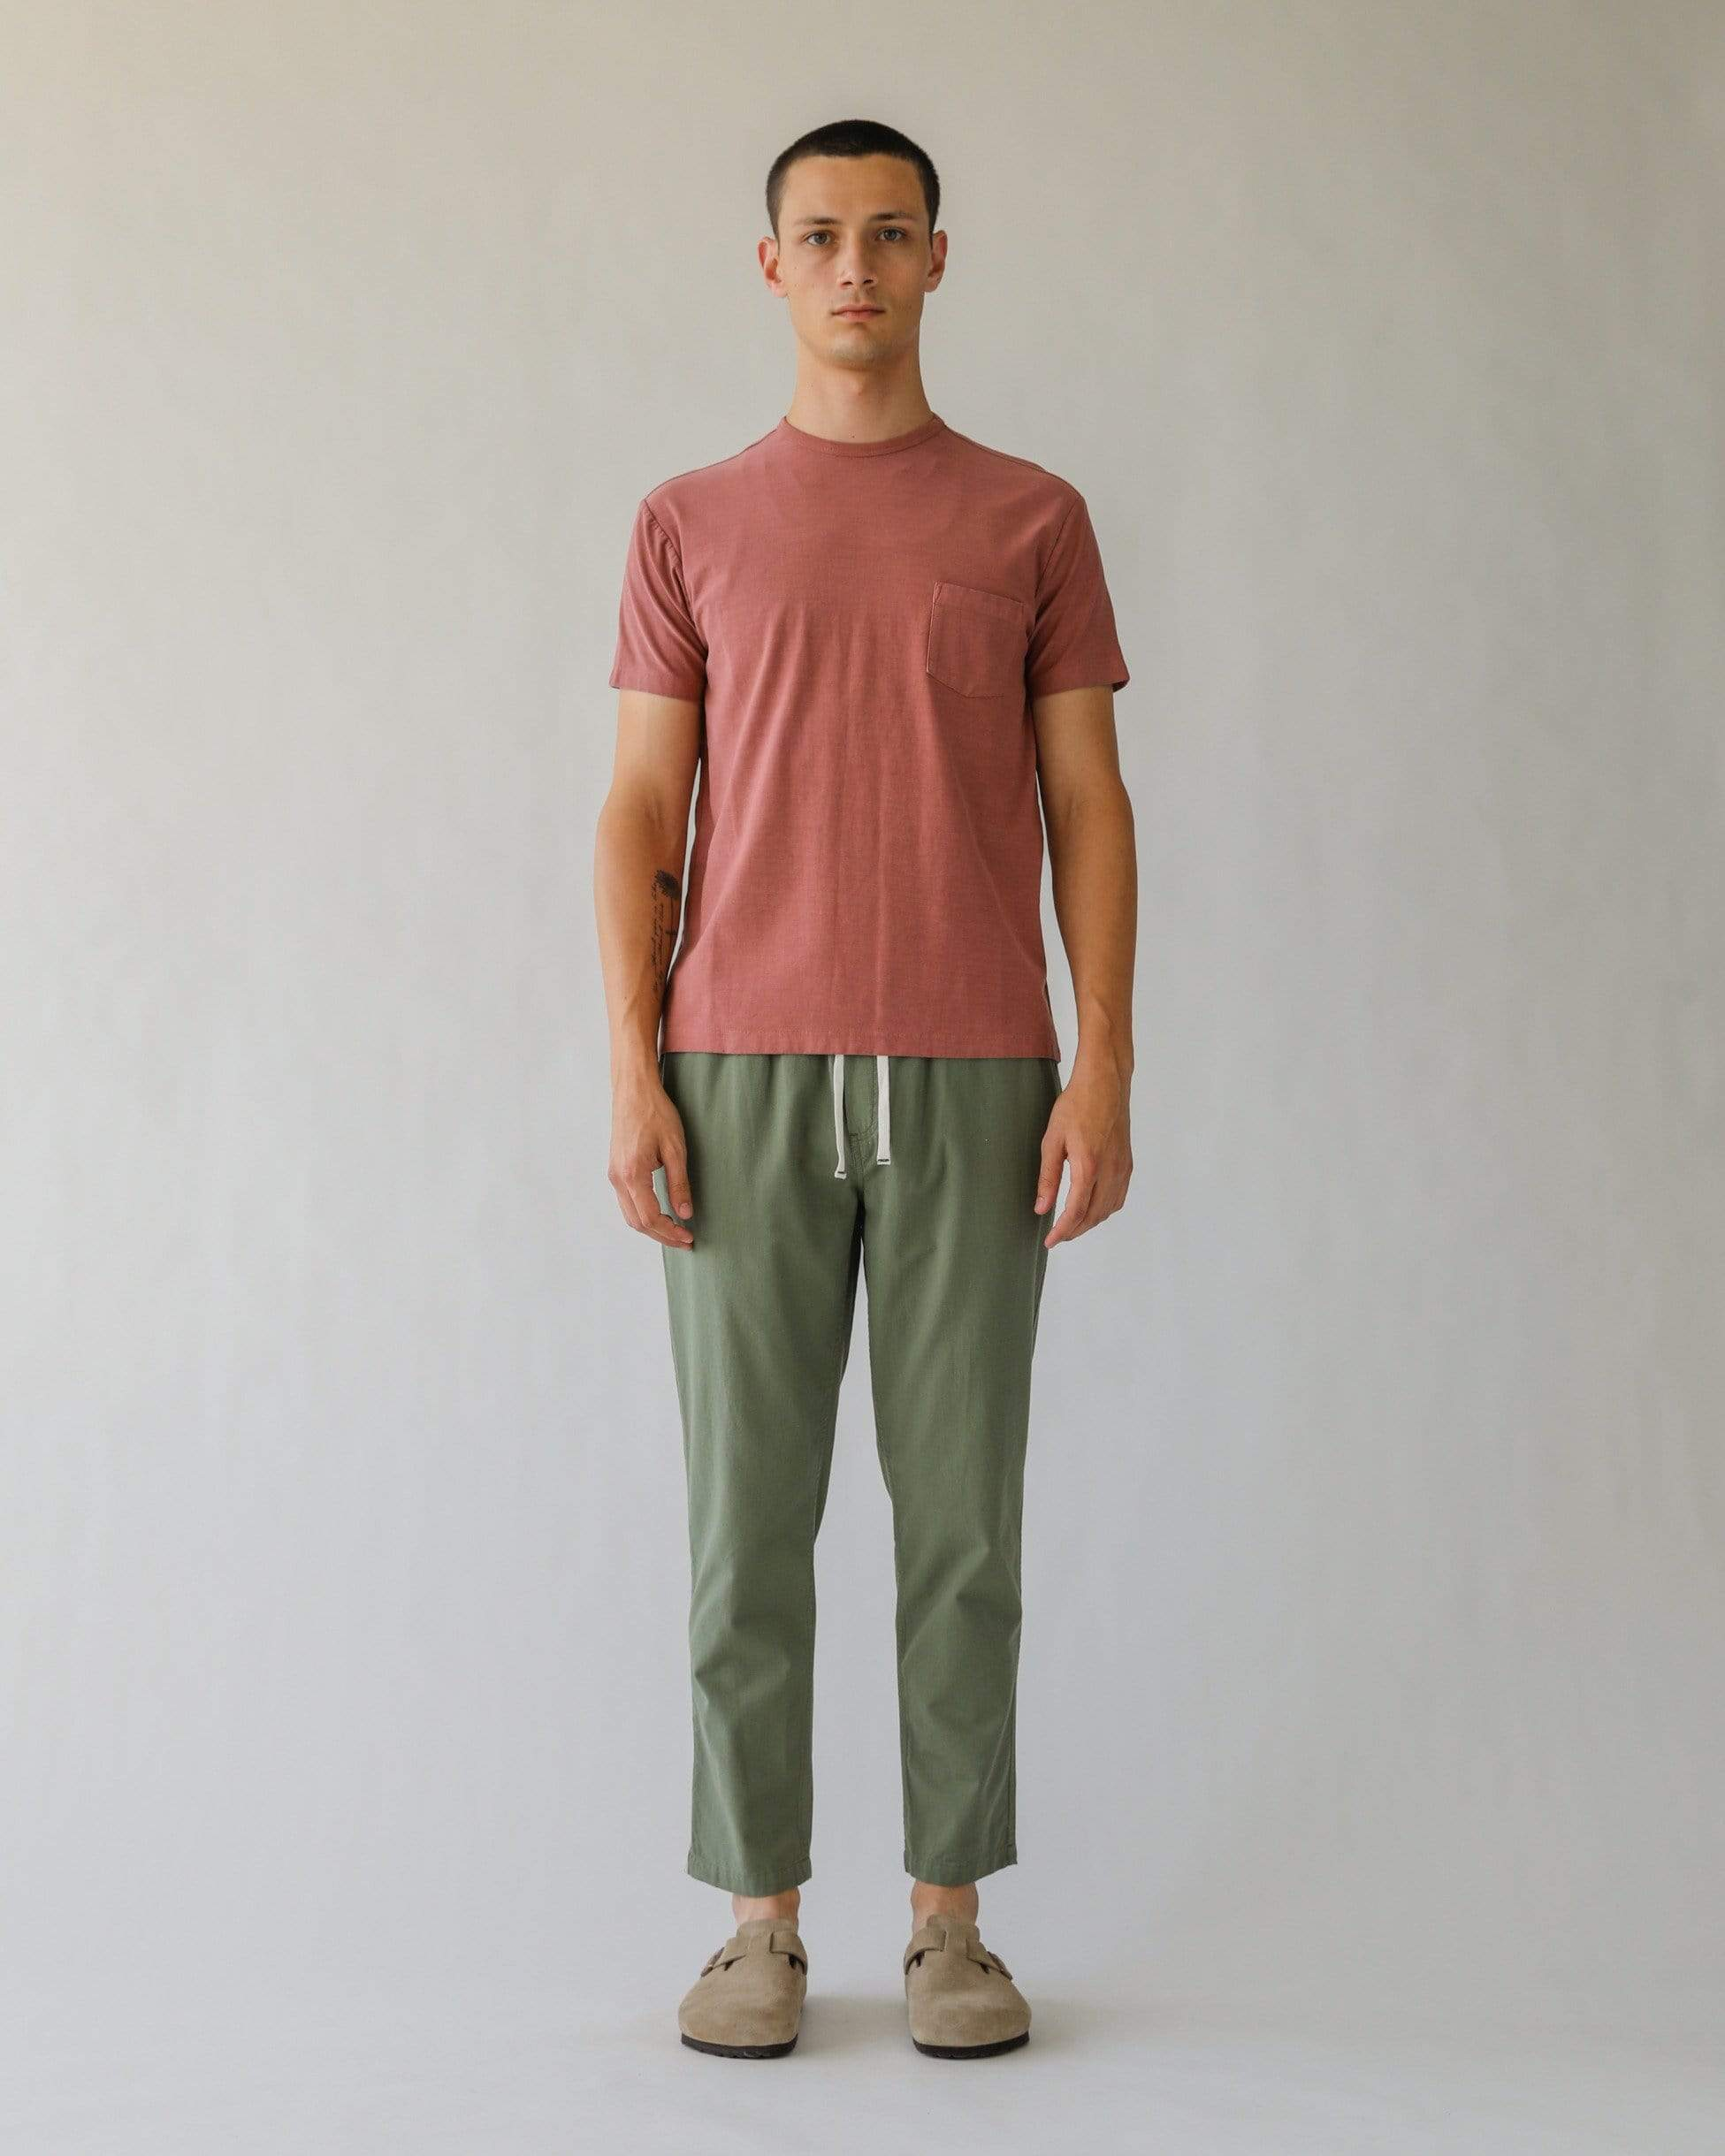 Ripstop Olive Drawstring Trousers